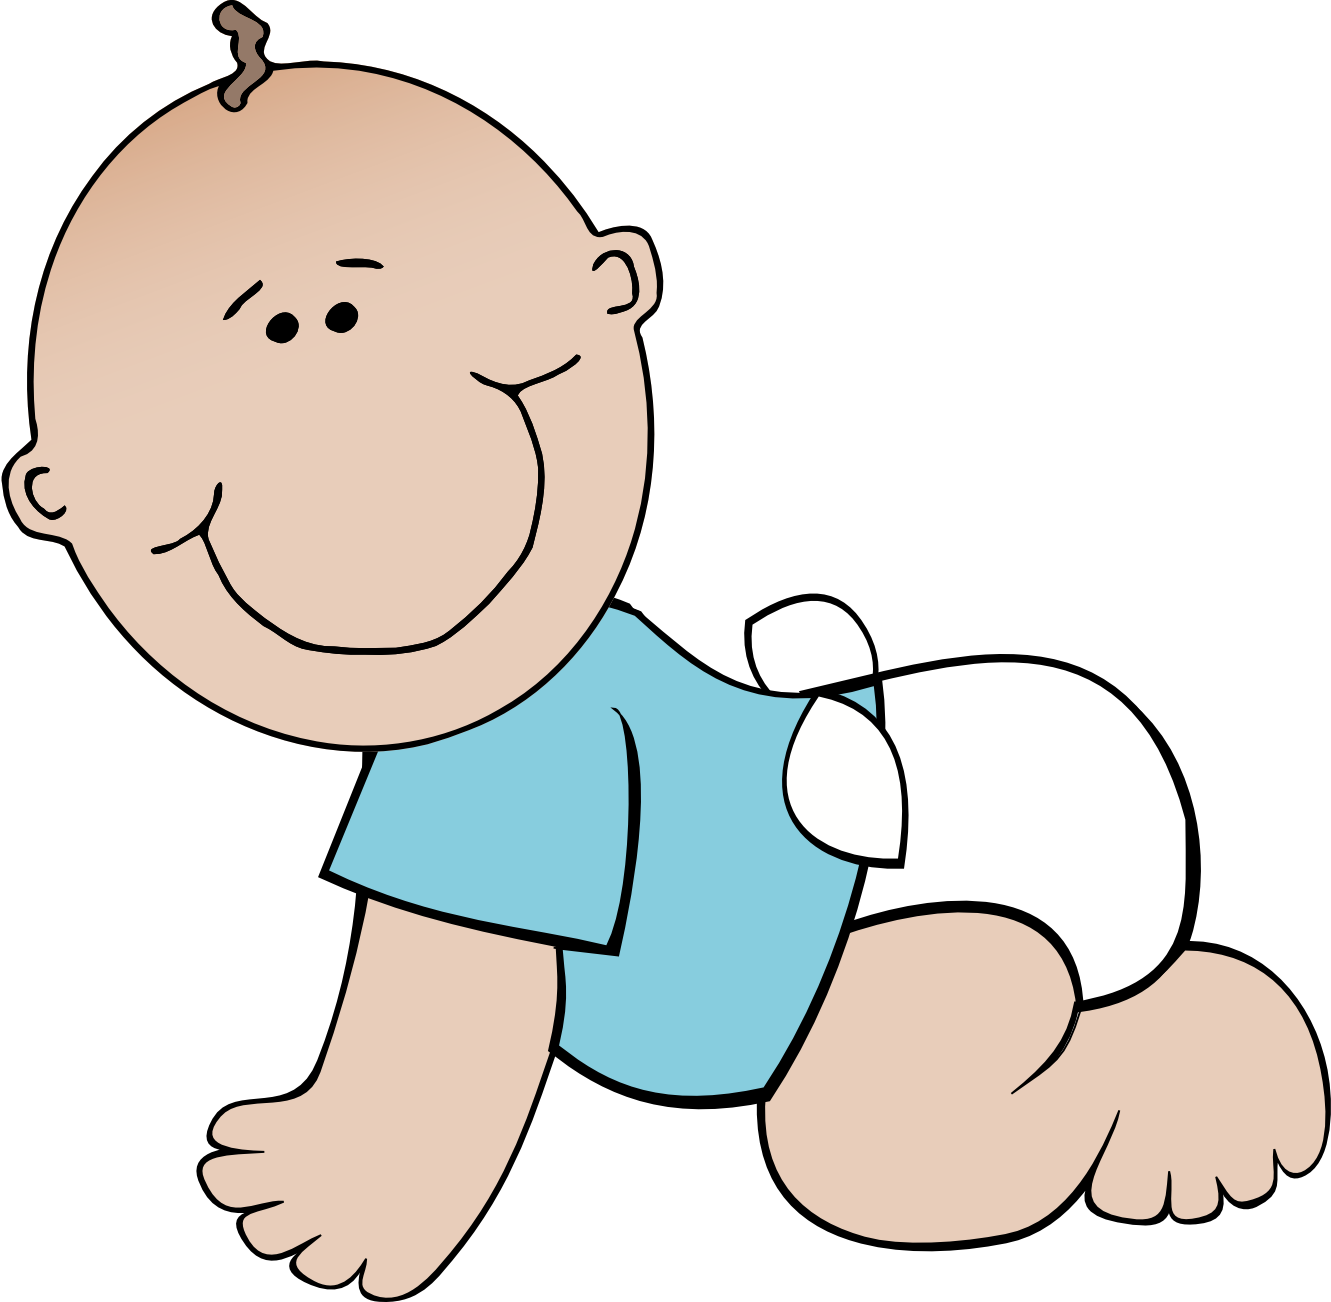 Clipart Baby-Clipart Baby-8